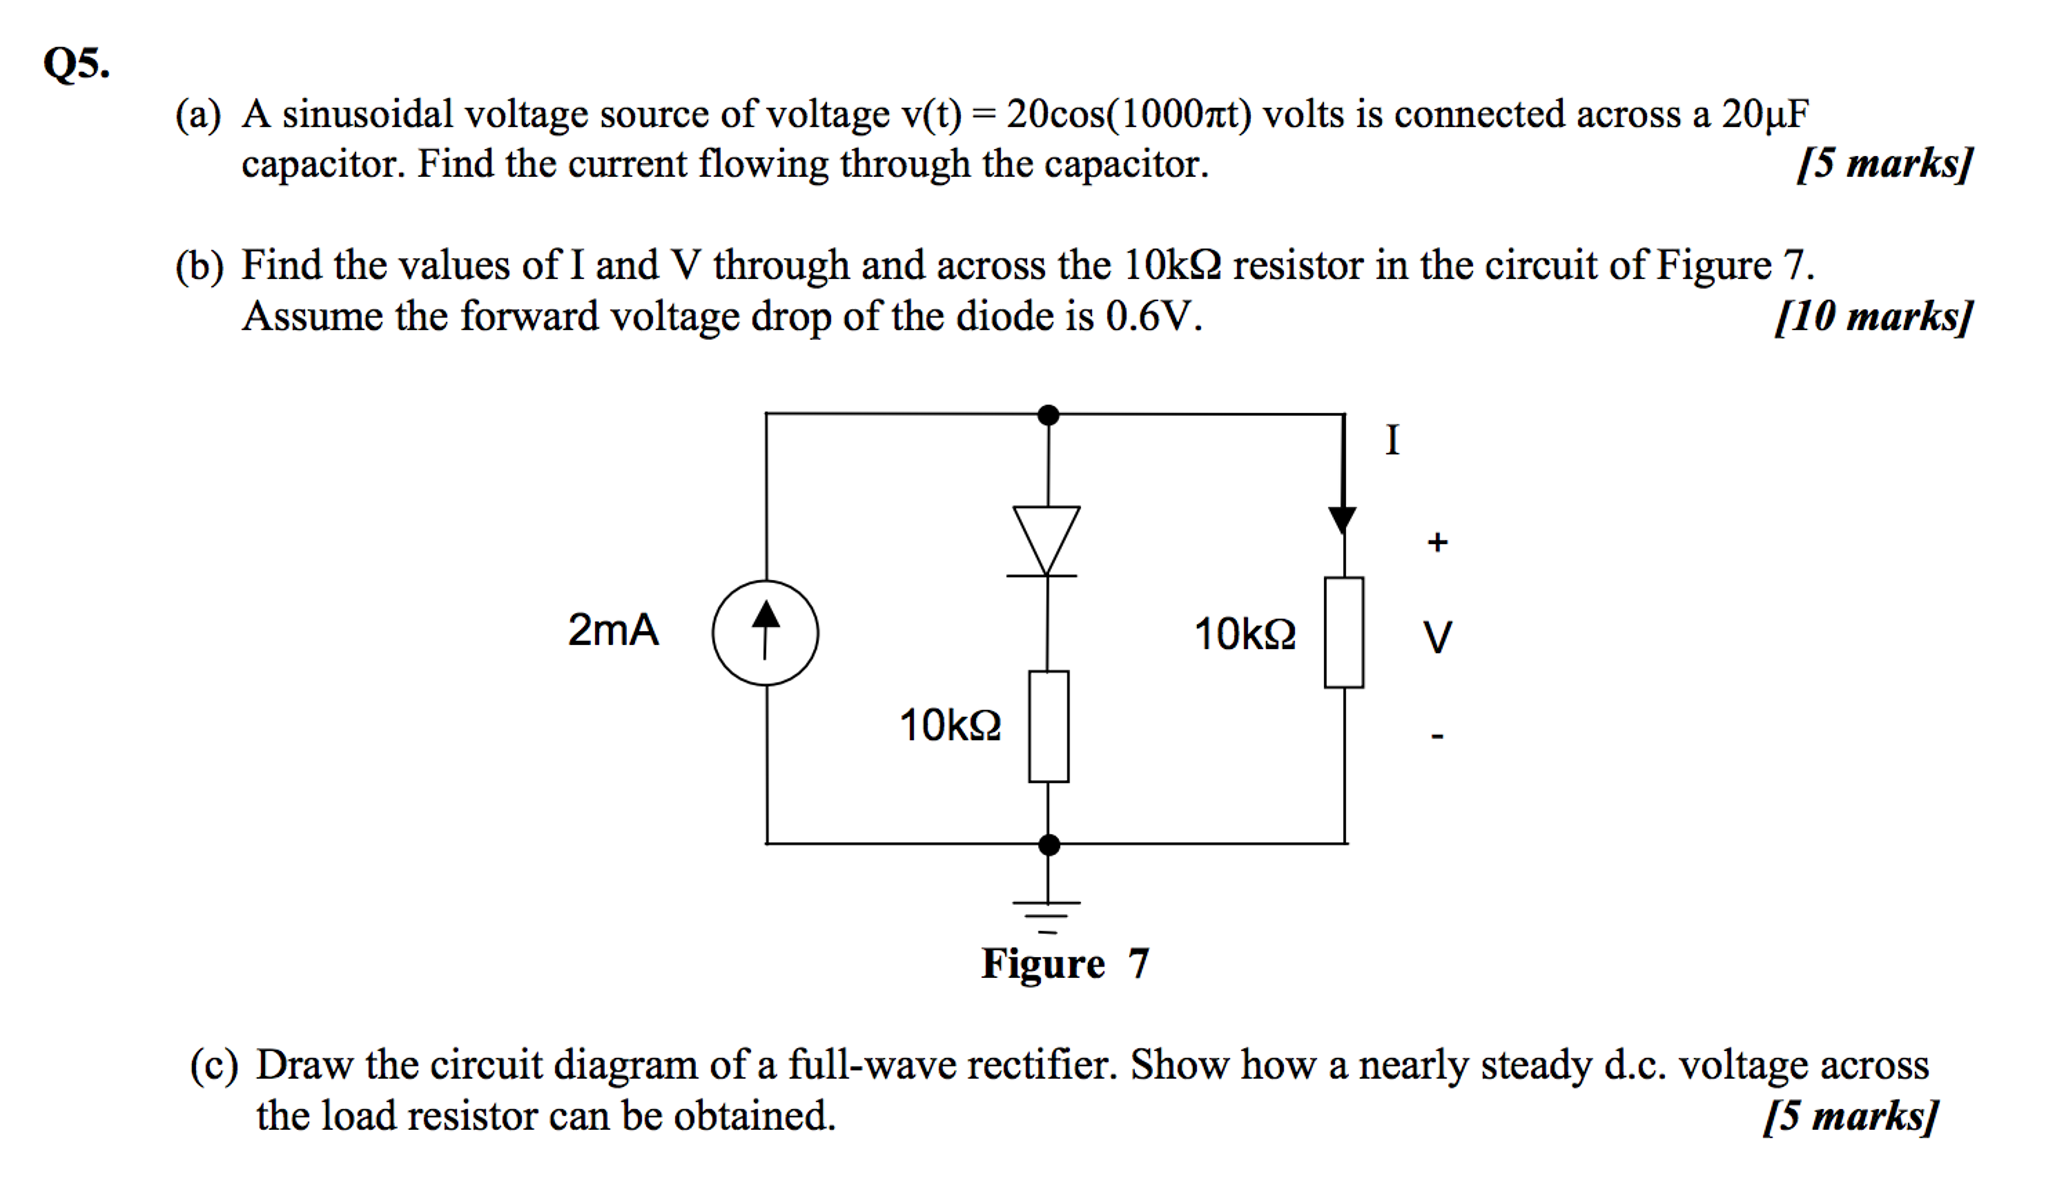 solved a sinusoidal voltage source of voltage v(t) \u003d 20co Function Generator Circuit Diagram